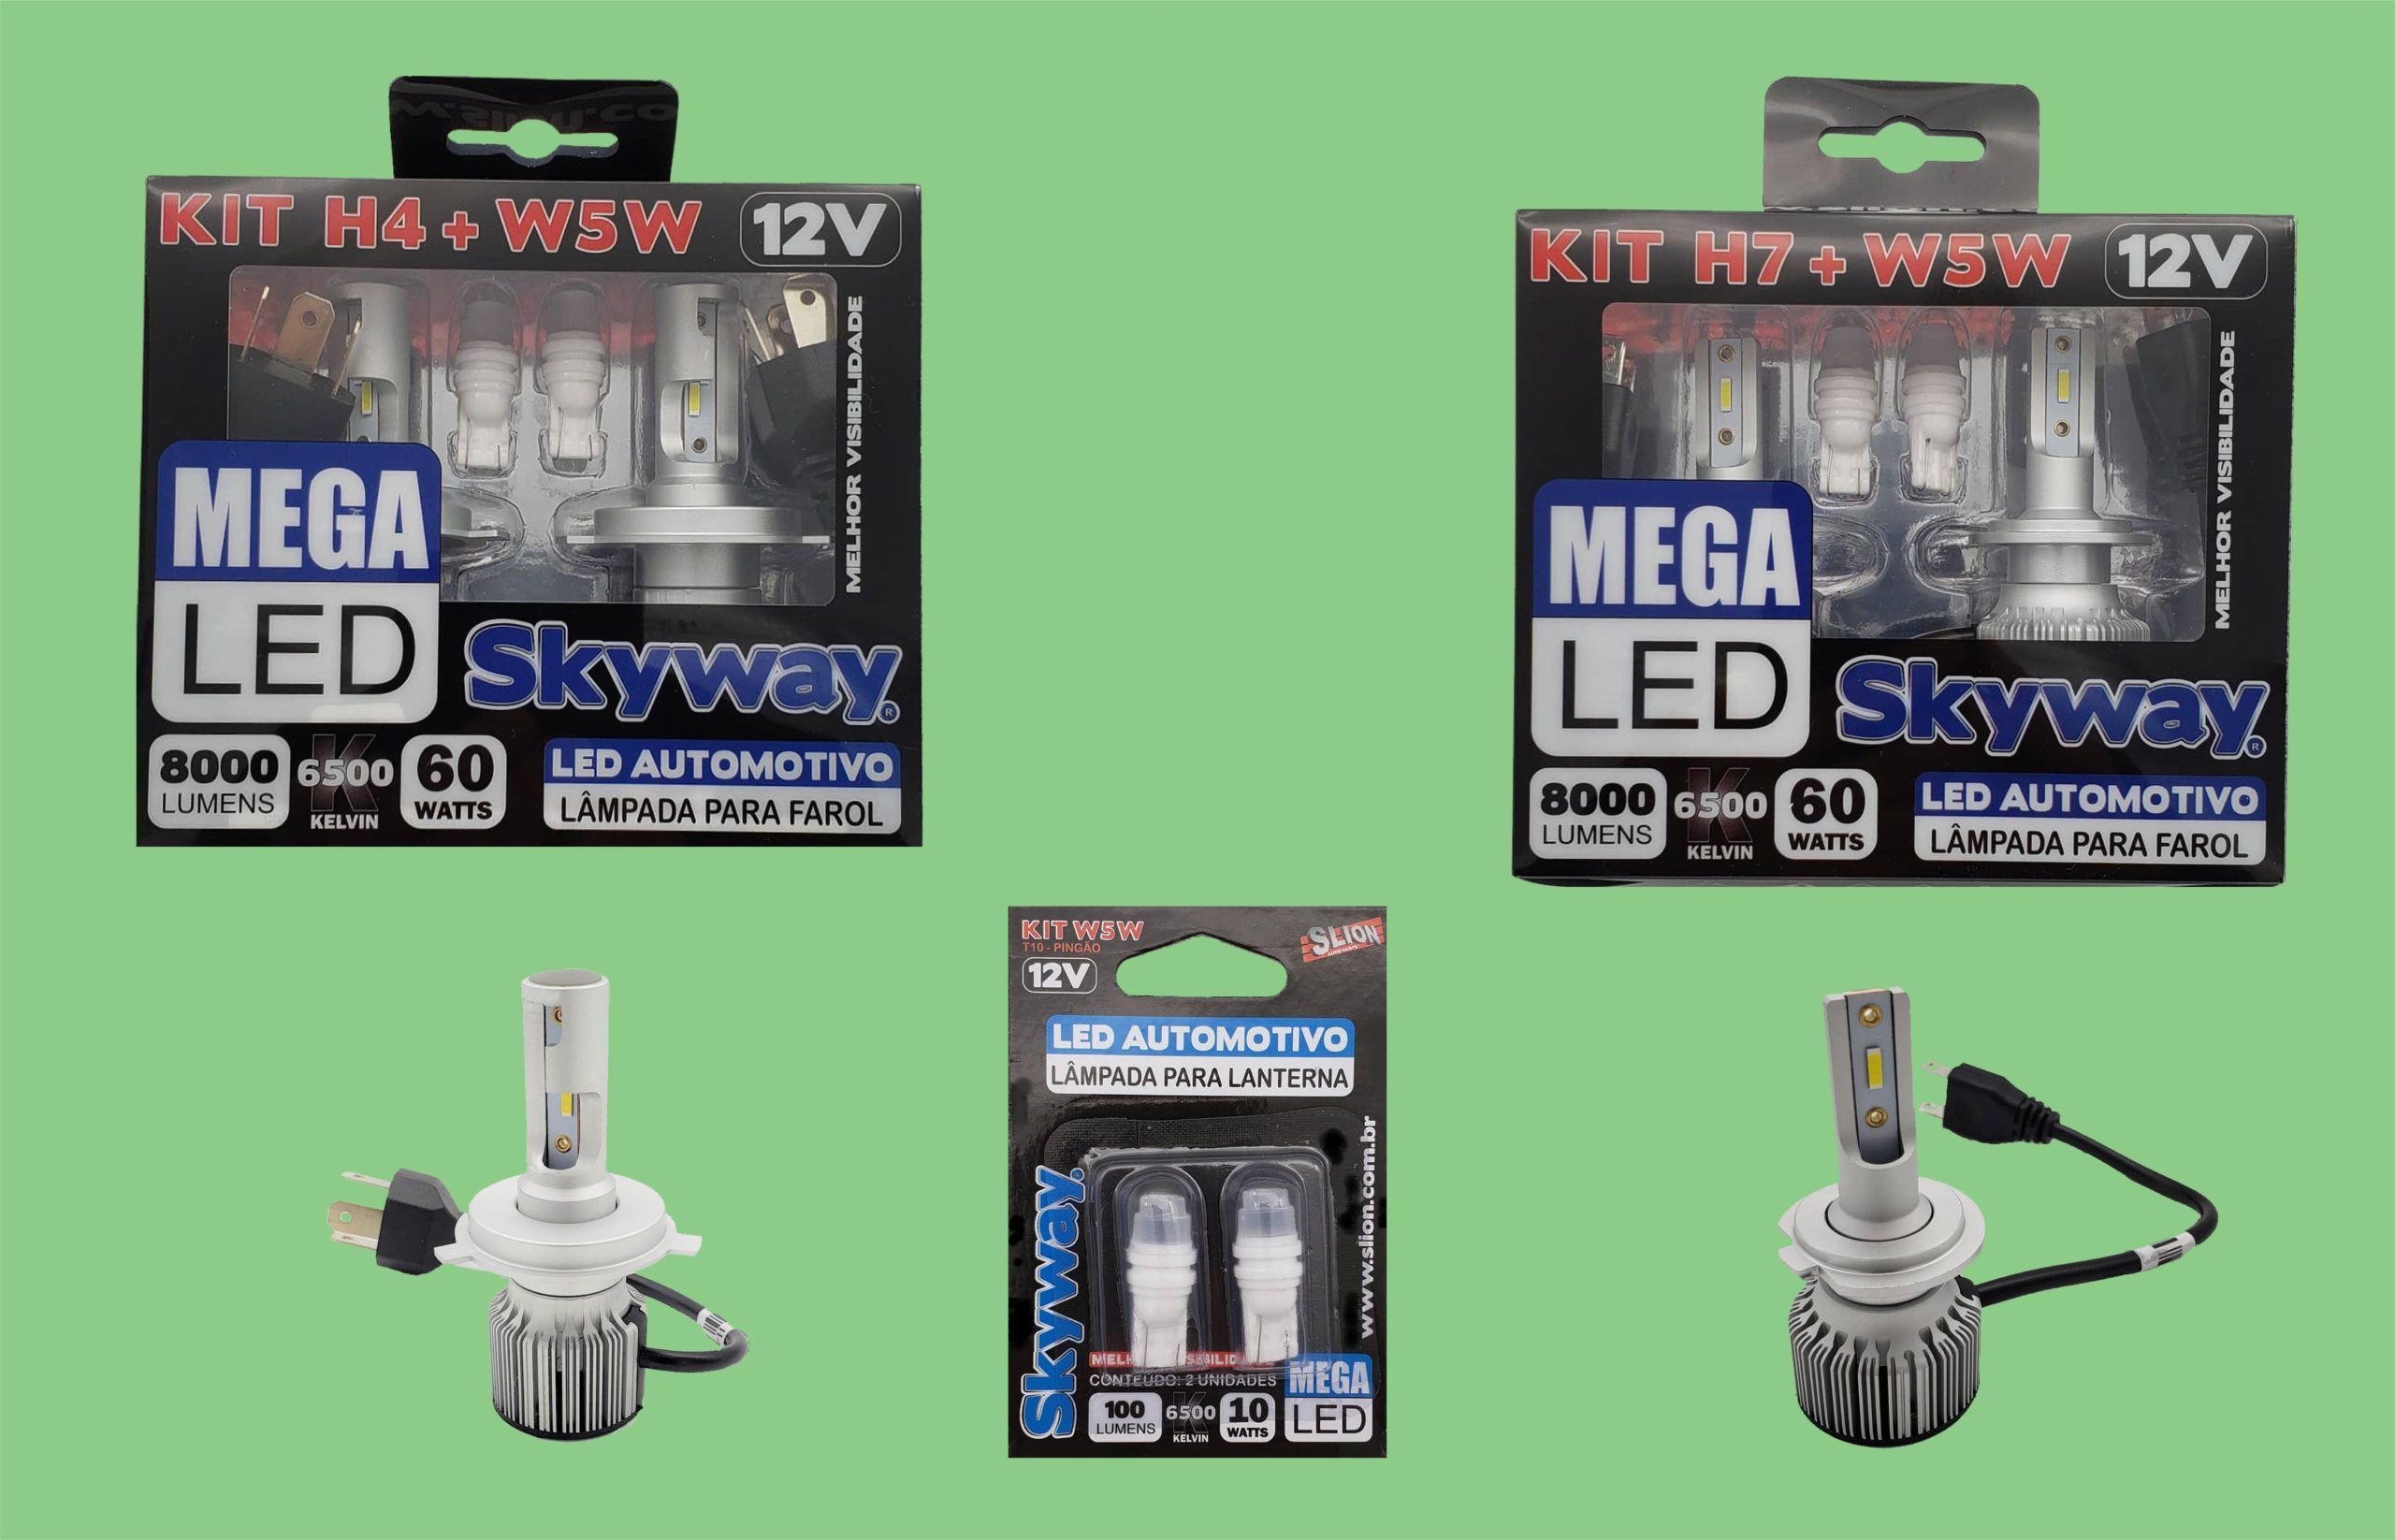 LED AUTOMOTIVO SKYWAY MEGA-LED